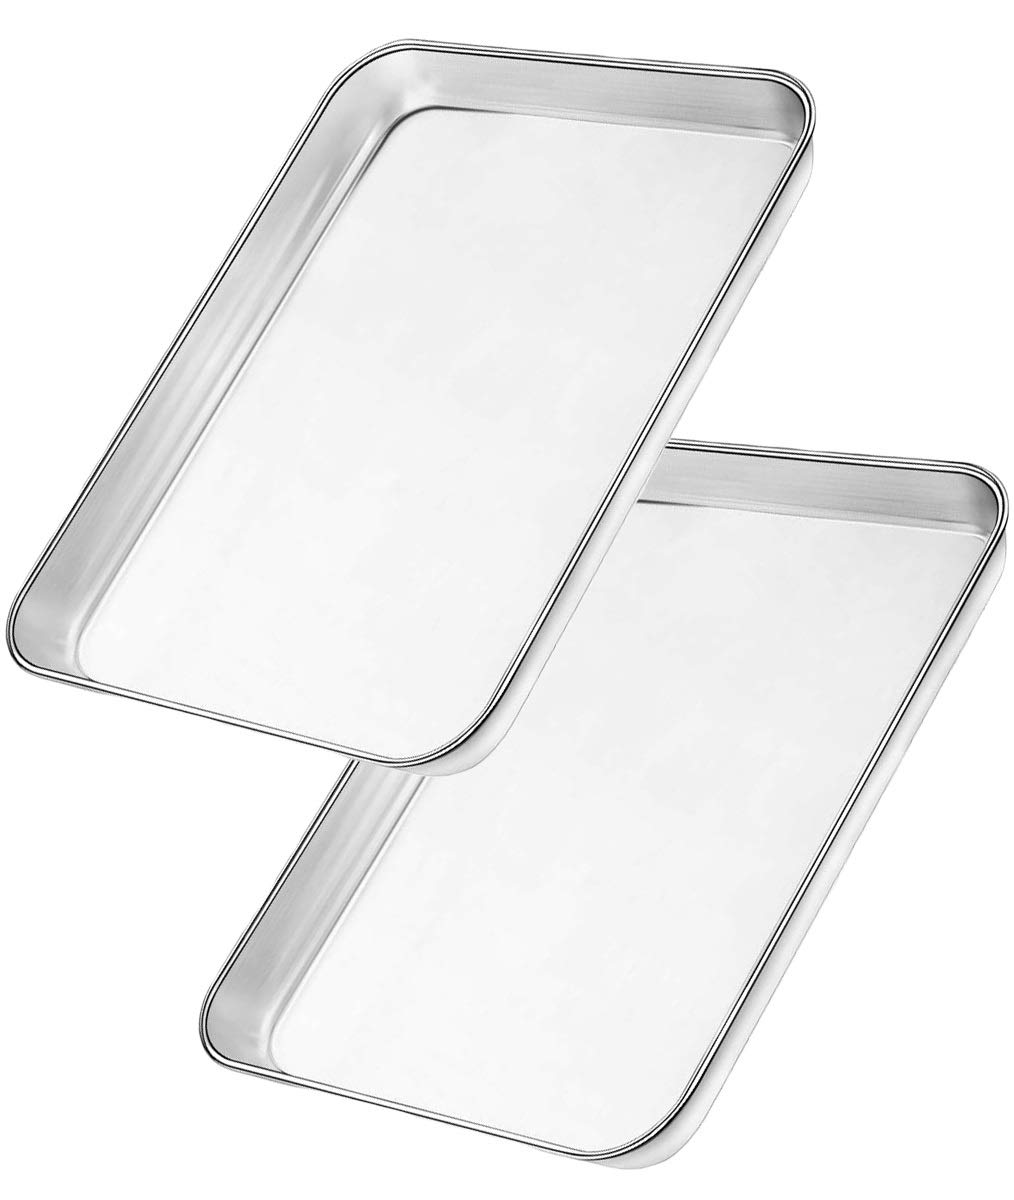 Bangder Heavy Duty Stainless Steel Sheet Pan Easily Wipes Clean! Baking Sheet Pan for Toaster Oven, Mirror Finish & Rust Free, Dishwasher Safe, 10 X 8 inch, Set of 2